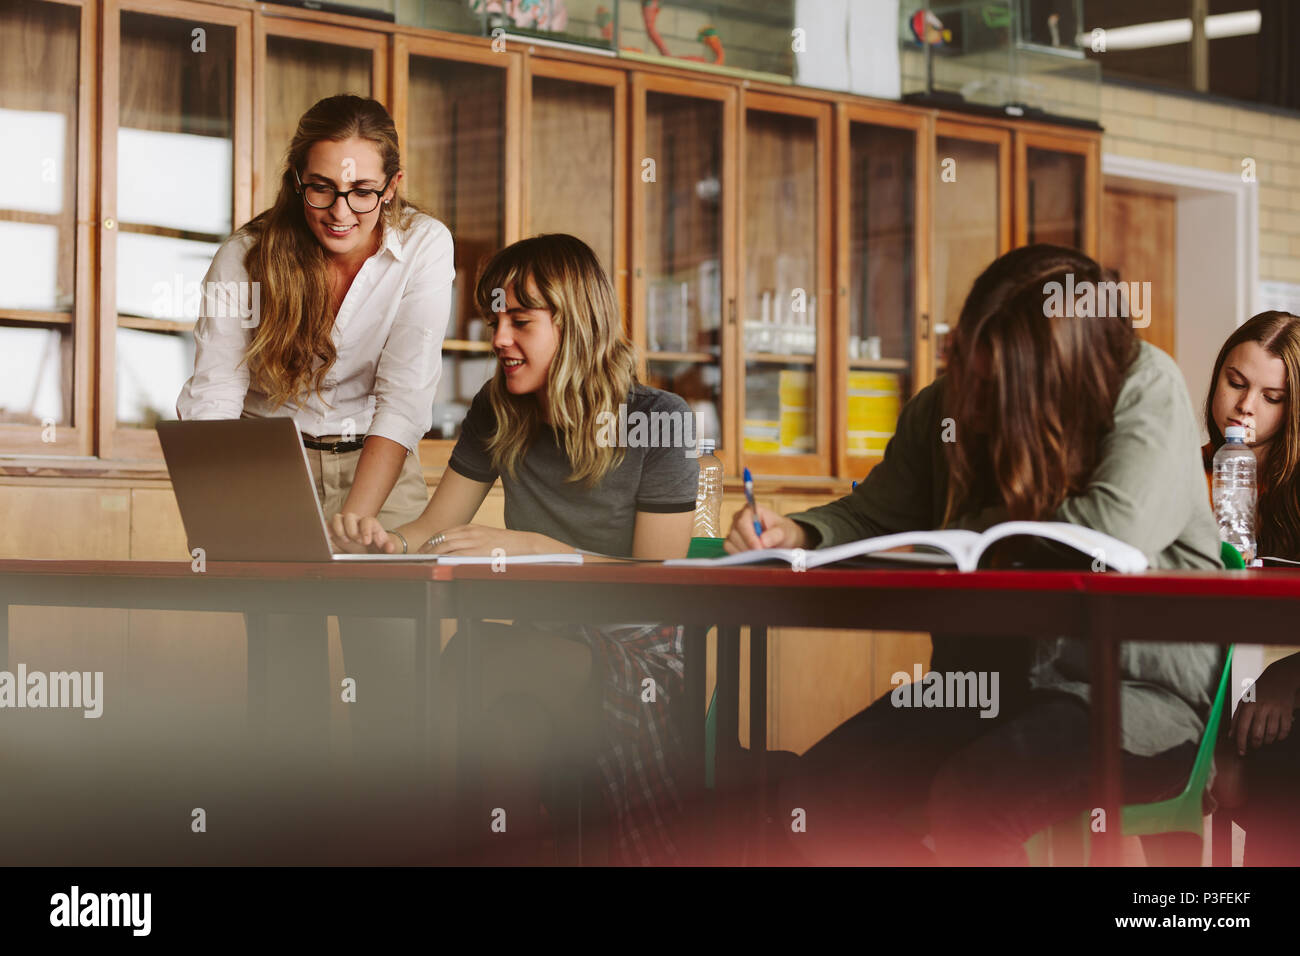 Happy young teacher helping a female student  studying on laptop in classroom. Professor assisting students in lecture. Stock Photo